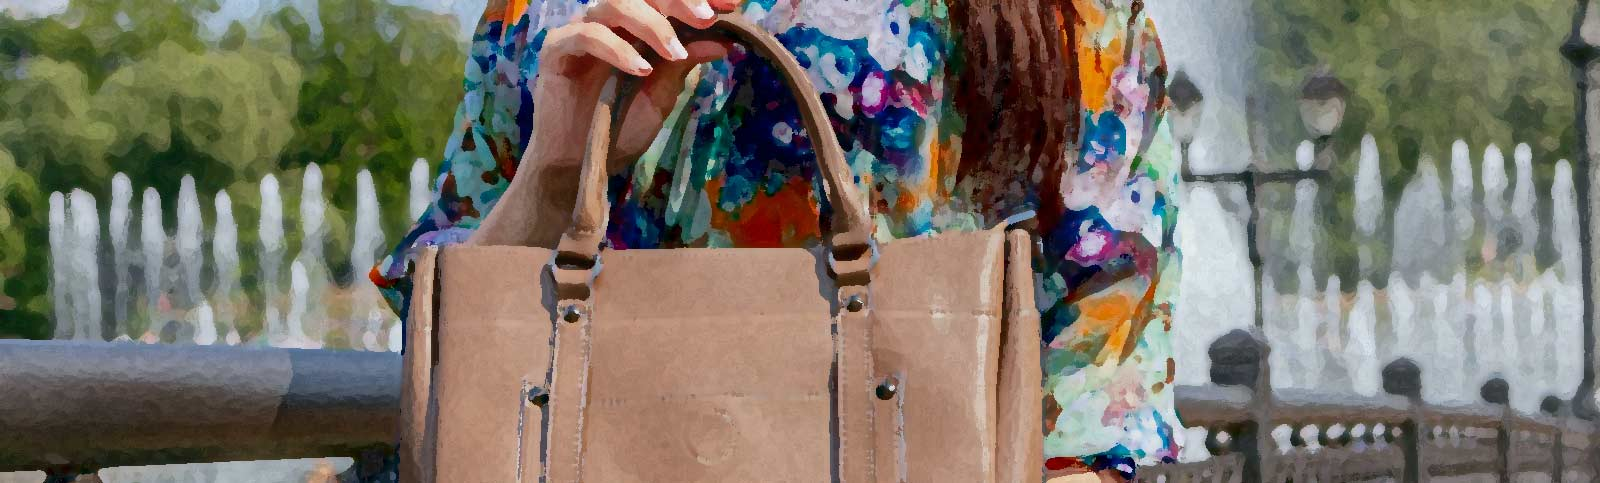 Popular Handbag Designers You Should Know